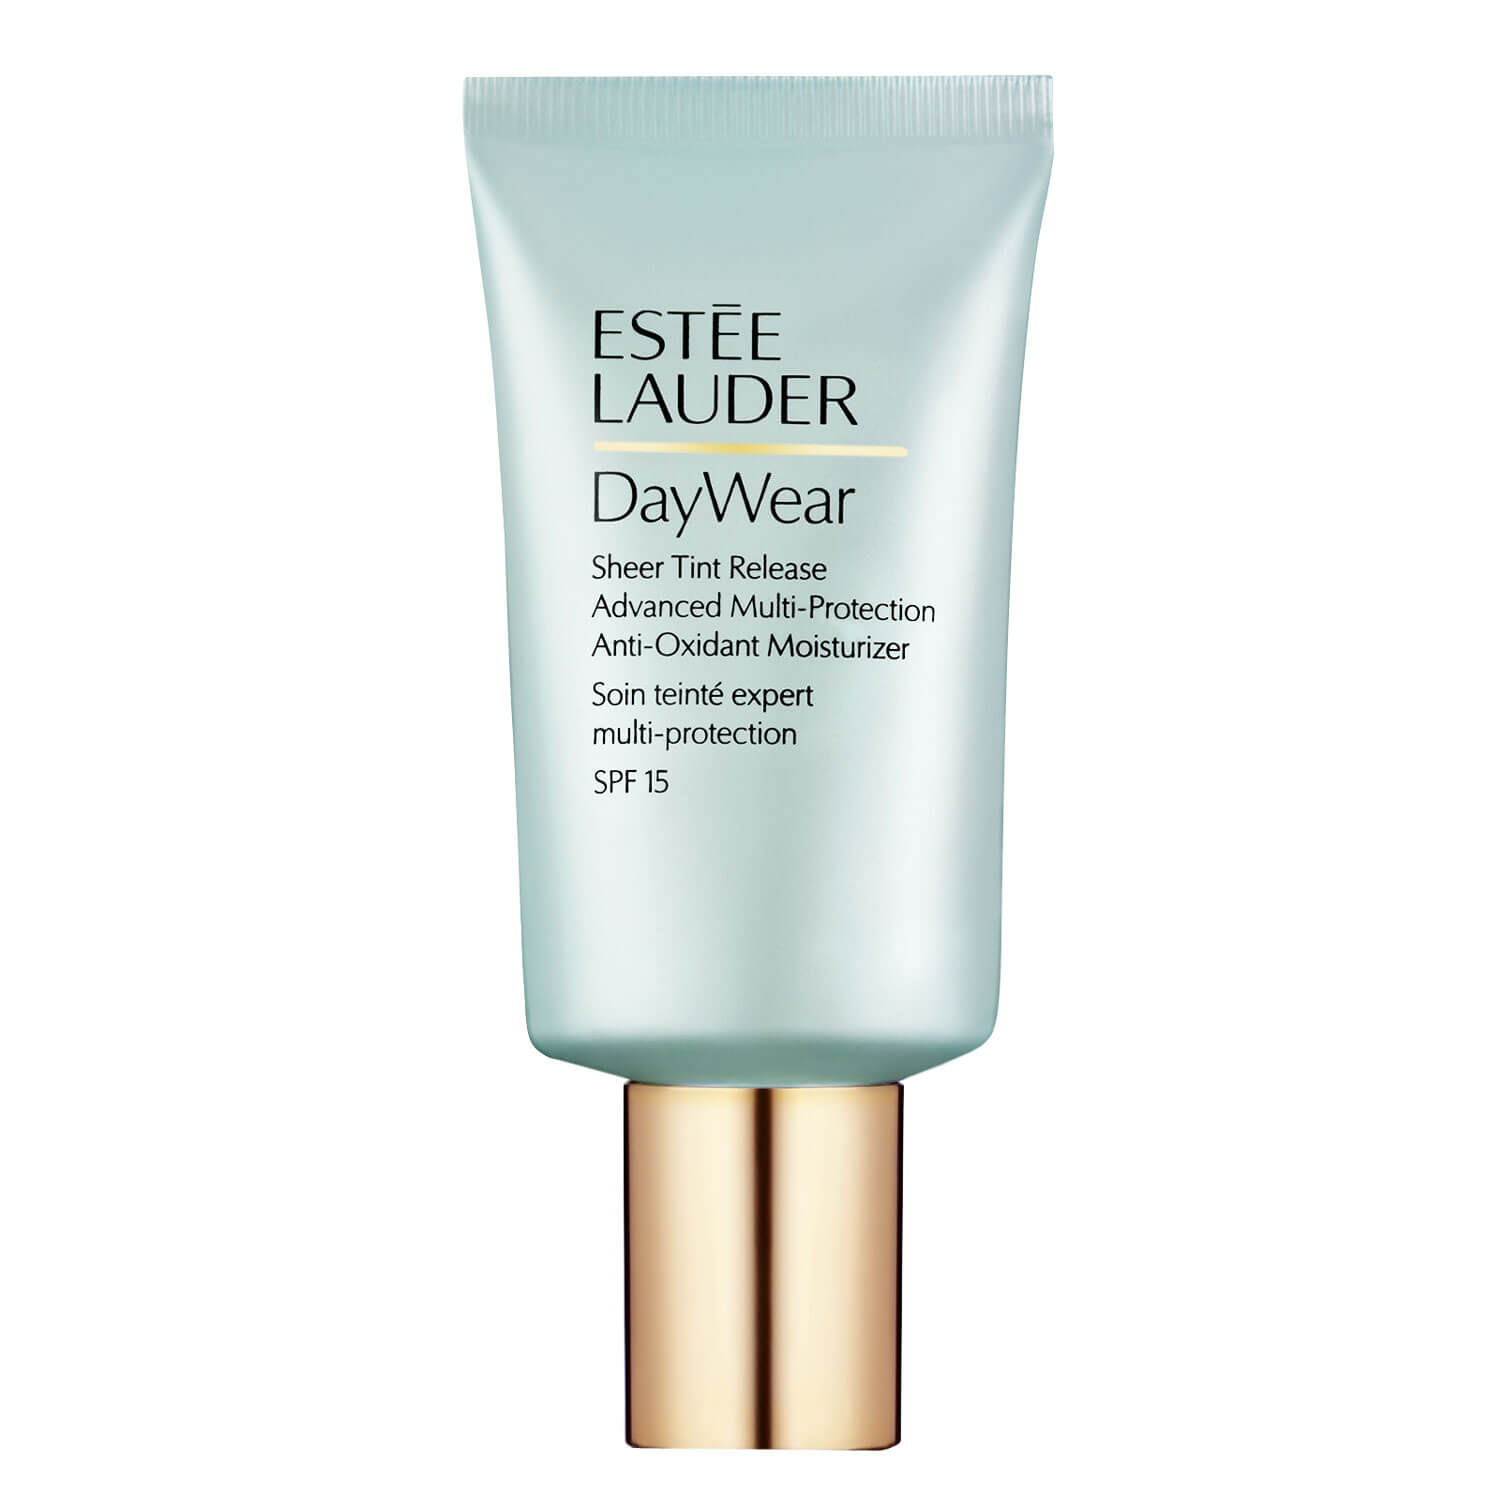 DayWear - Multi-Protection Anti-Oxidant Sheer Tint Release Moisturizer SPF15